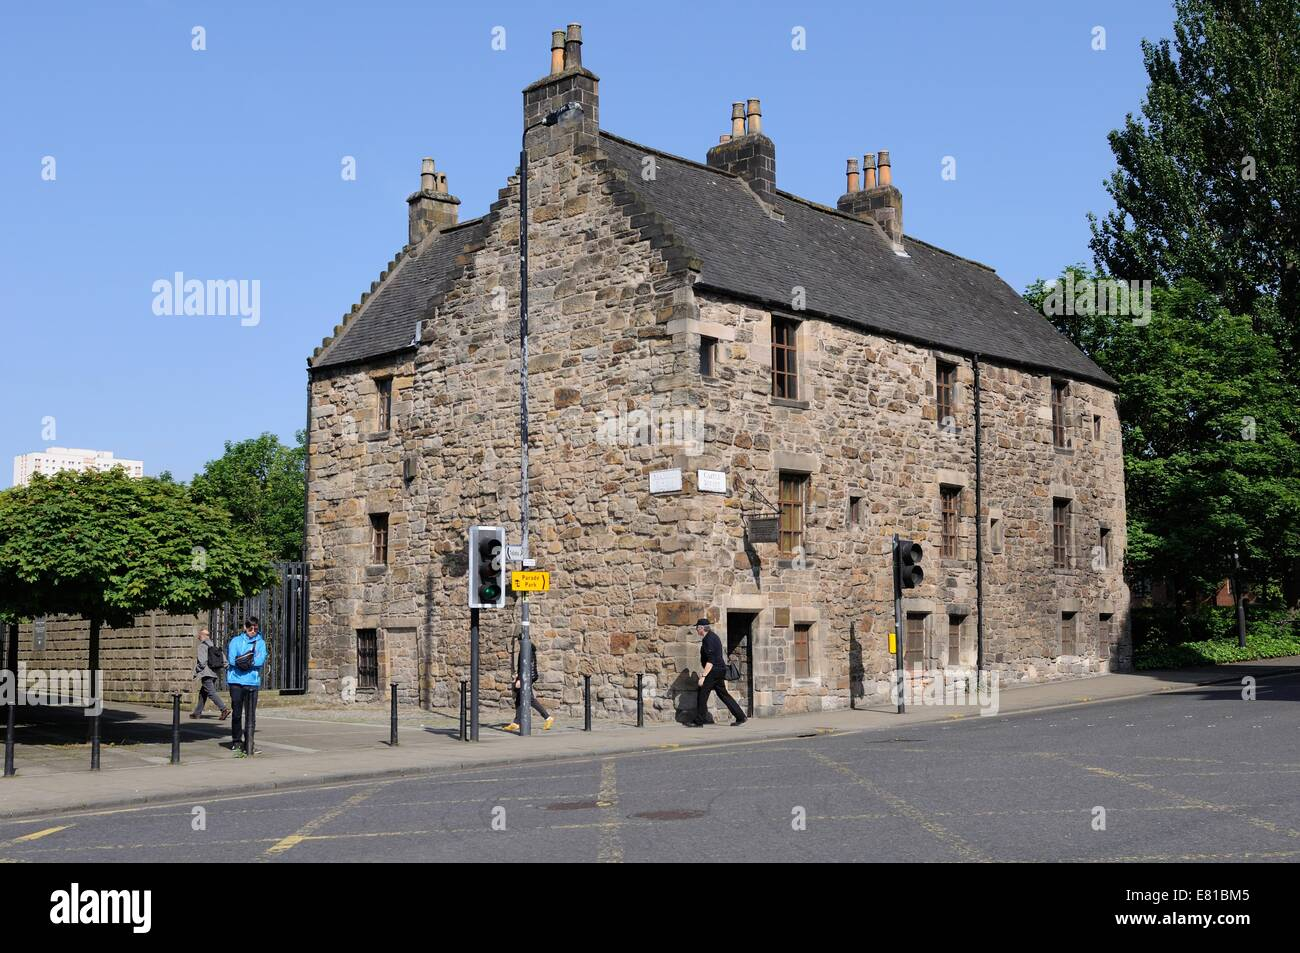 Oldest House In Glasgow Stock Photos & Oldest House In